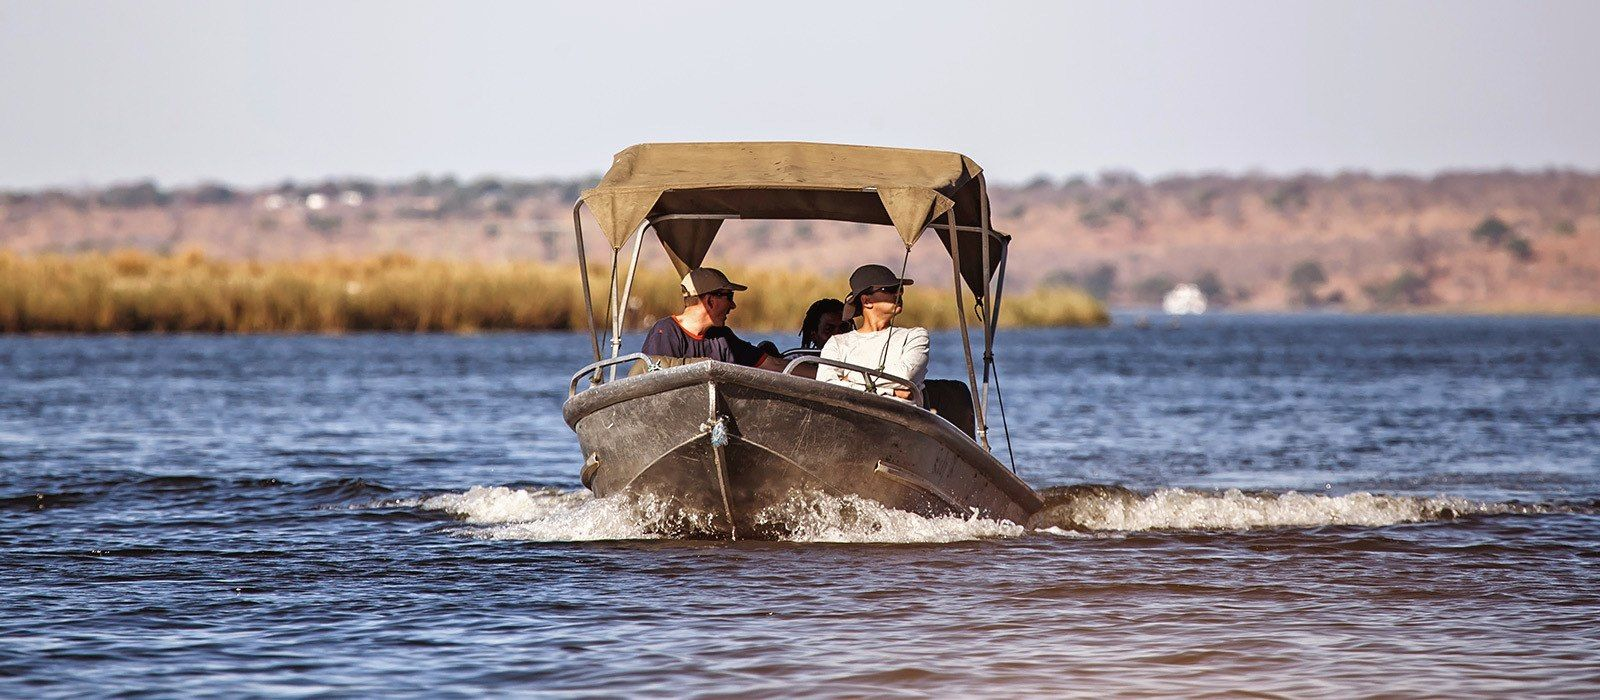 Botswana: Your Wildest Dreams Tour Trip 3